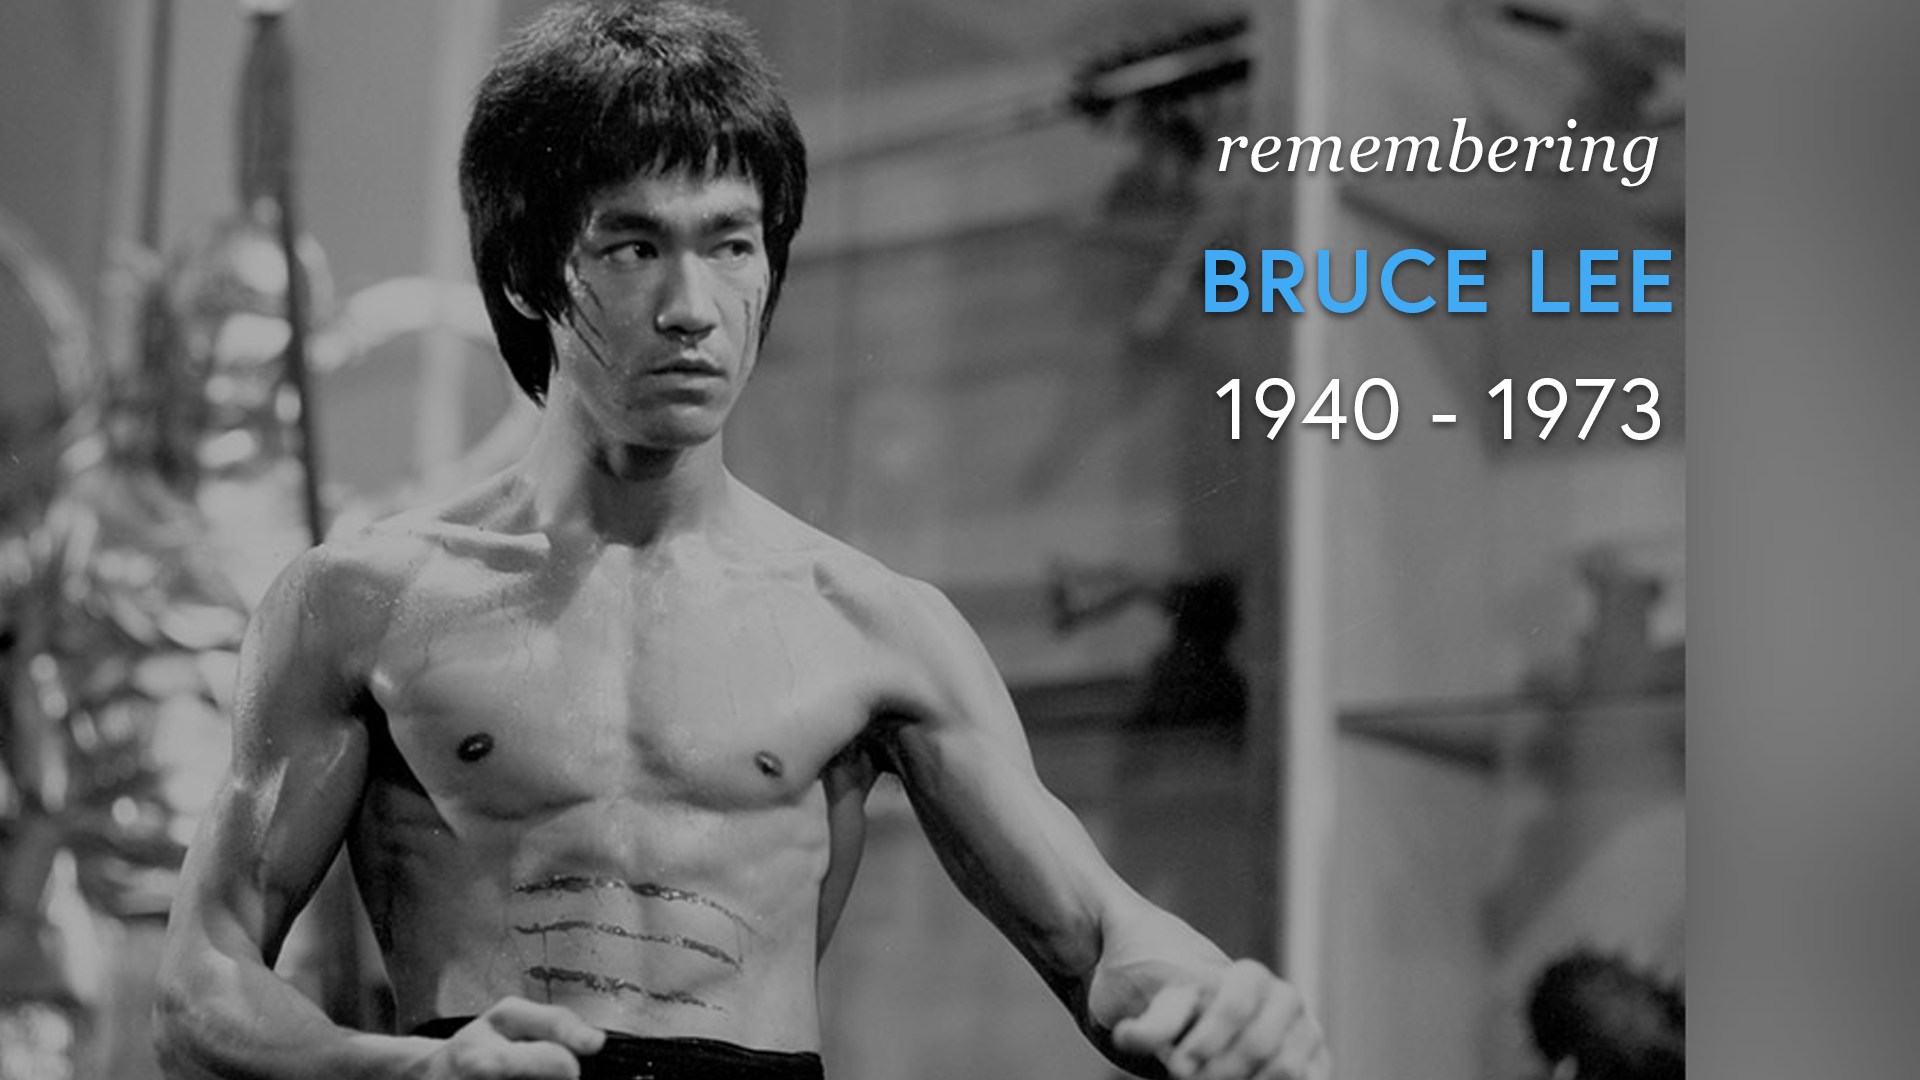 Remembering Bruce Lee (1940 - 1973) screen capture